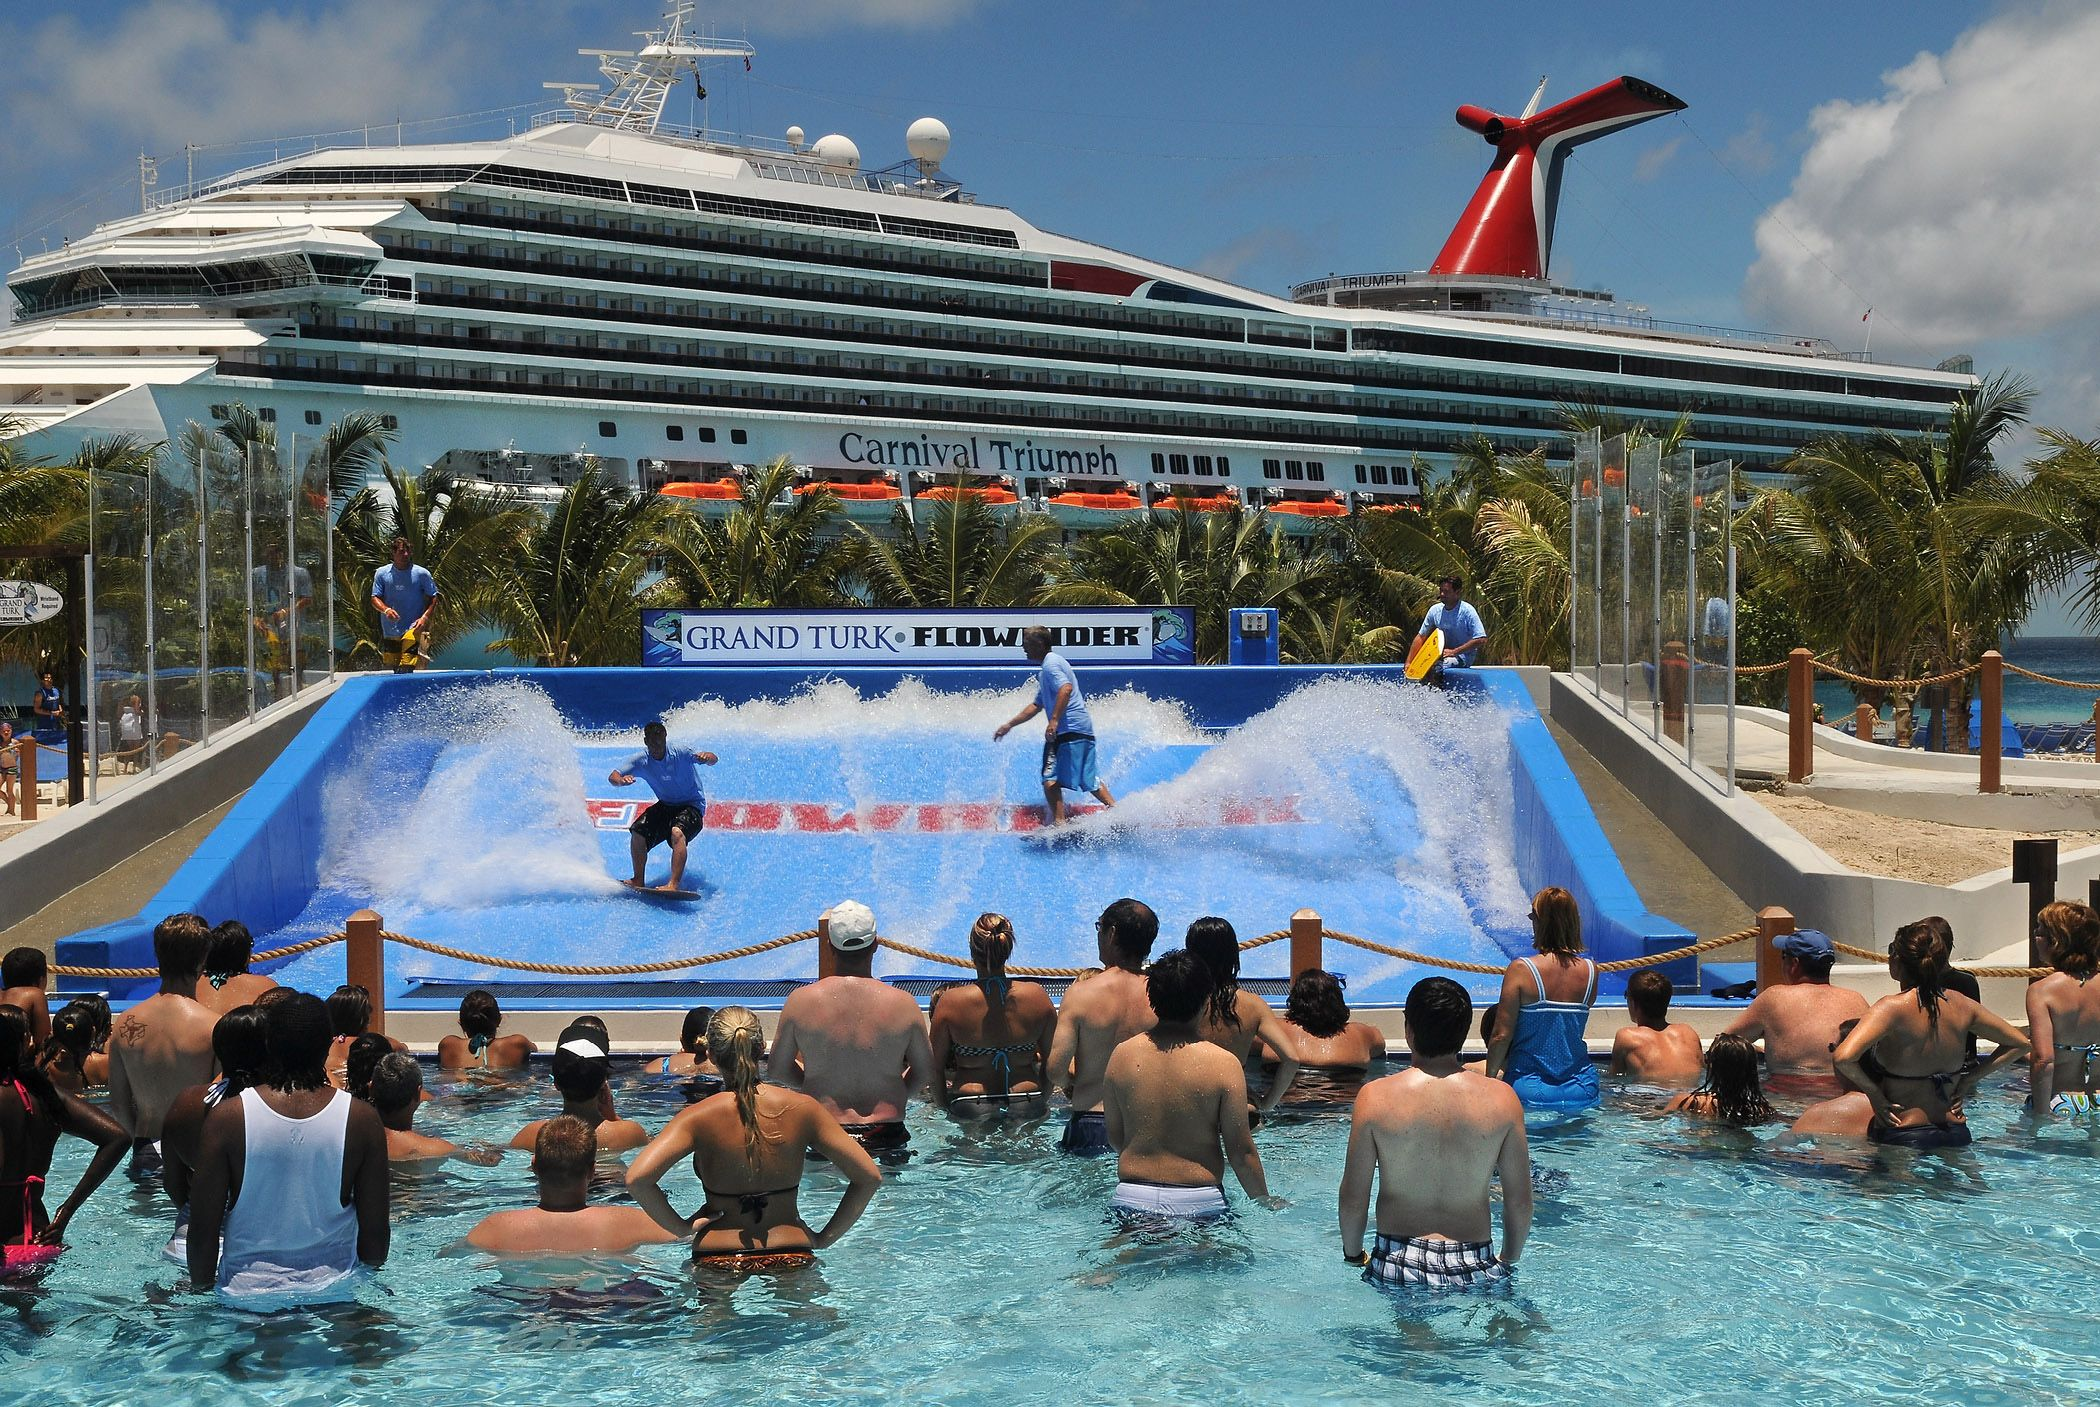 Caribbean weddings grand turk - Grand Turk Island The Attraction The Only One Of Its Kind At A Cruise